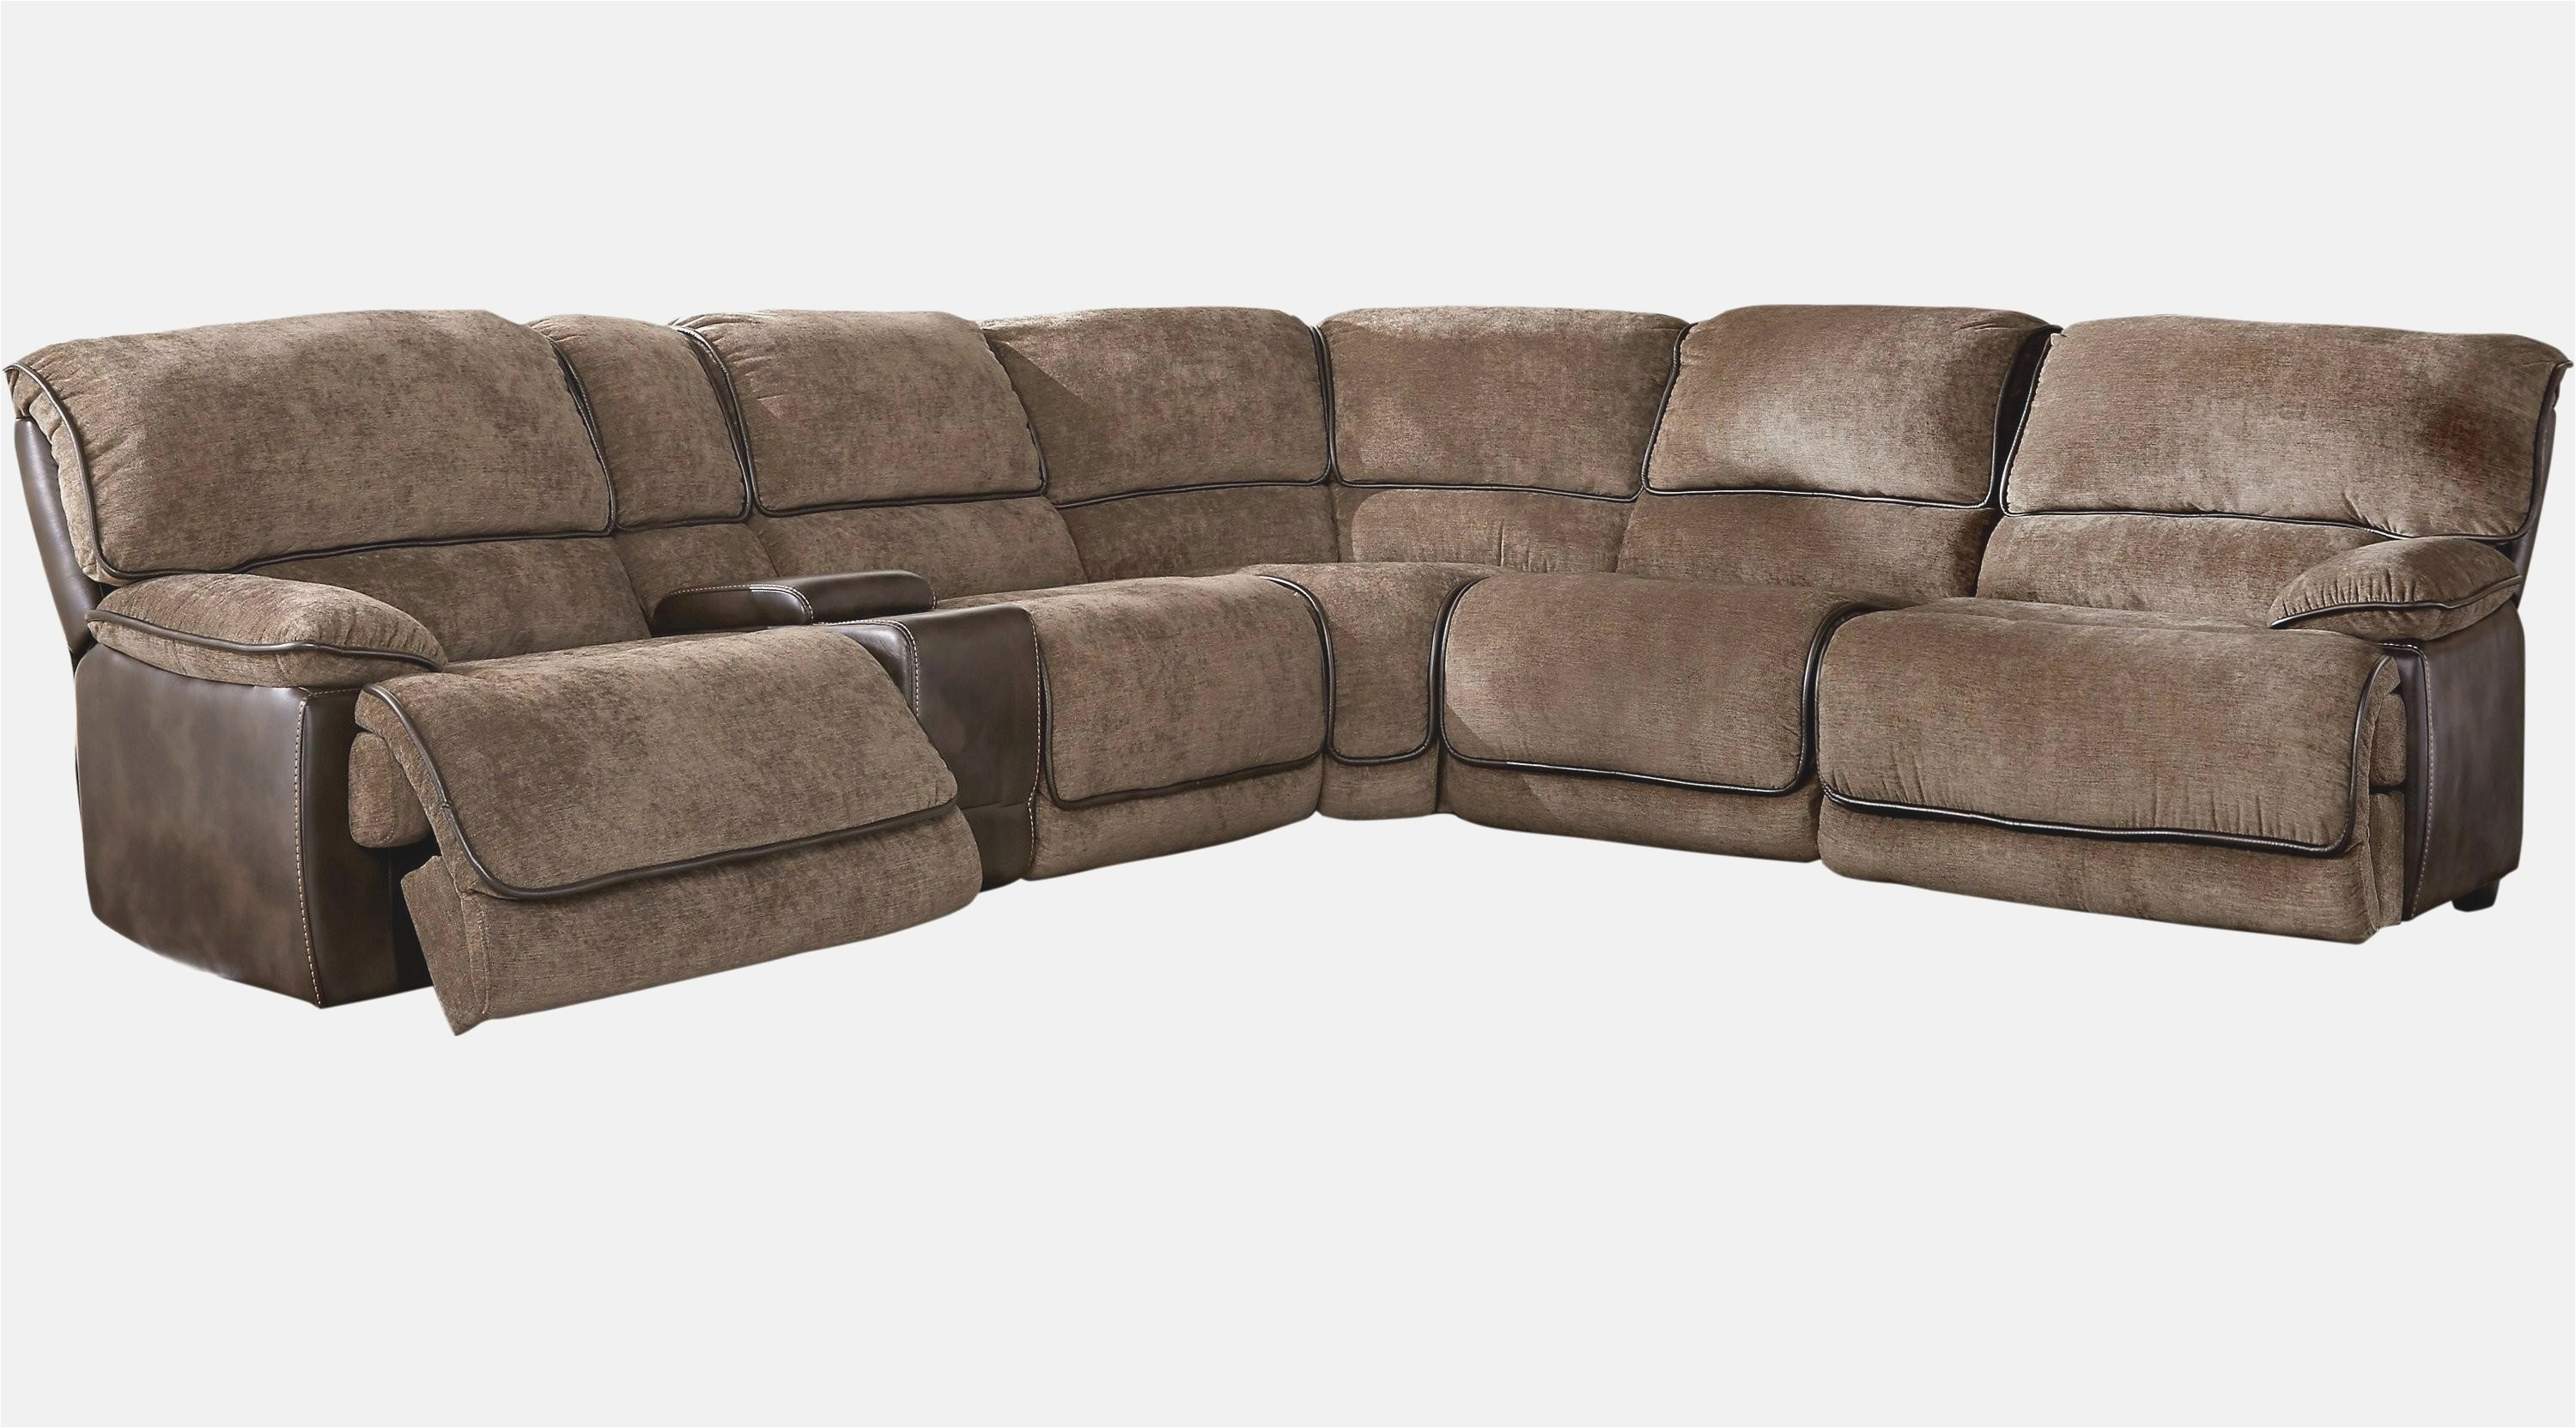 Regular 25 Apartment Sectional With Chaise Original within Aquarius Dark Grey 2 Piece Sectionals With Laf Chaise (Image 21 of 30)